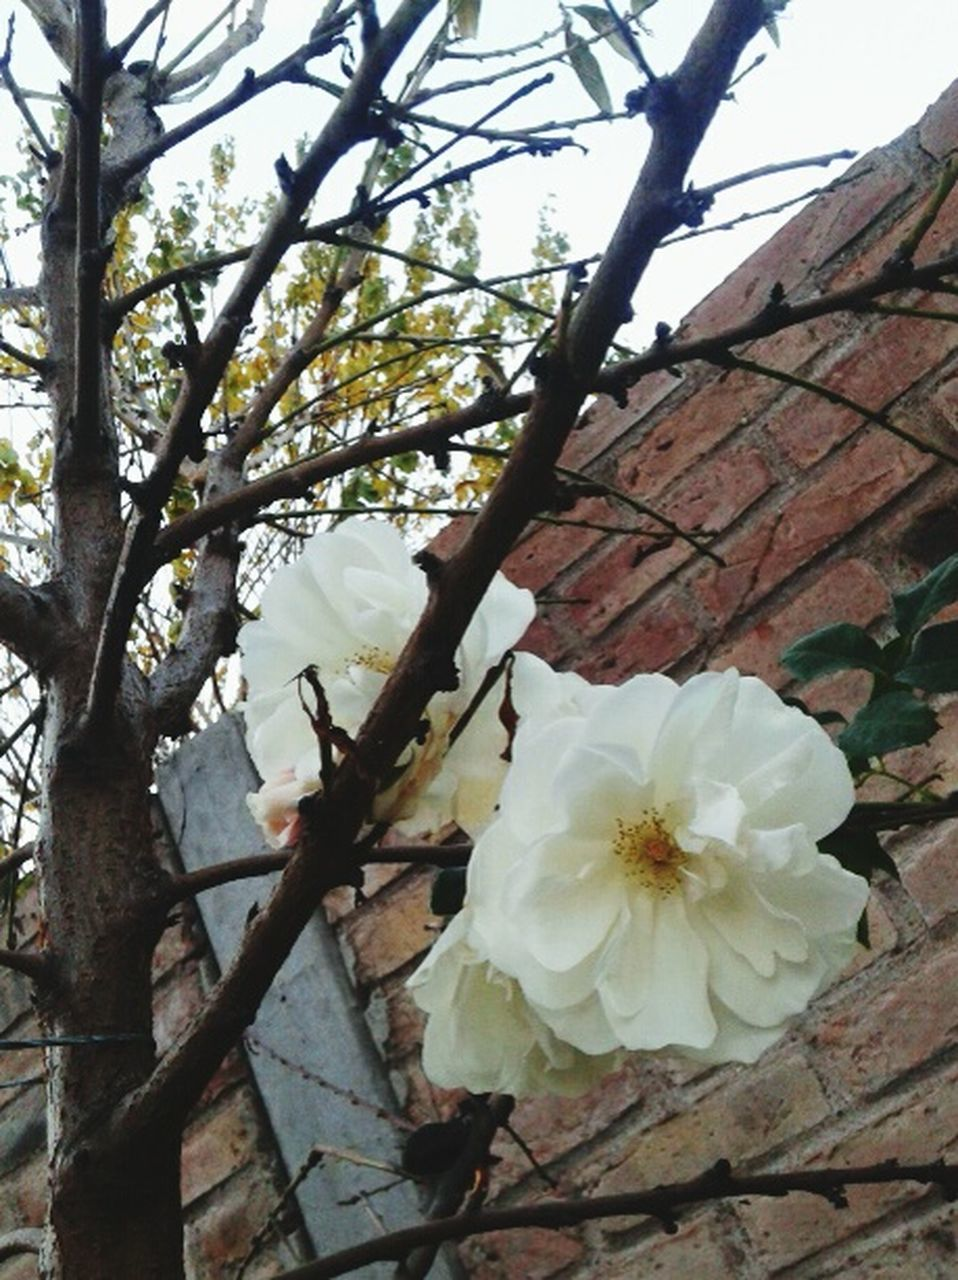 flower, fragility, petal, blossom, tree, beauty in nature, white color, growth, branch, nature, freshness, flower head, springtime, apple blossom, botany, no people, day, blooming, pollen, stamen, close-up, plum blossom, low angle view, outdoors